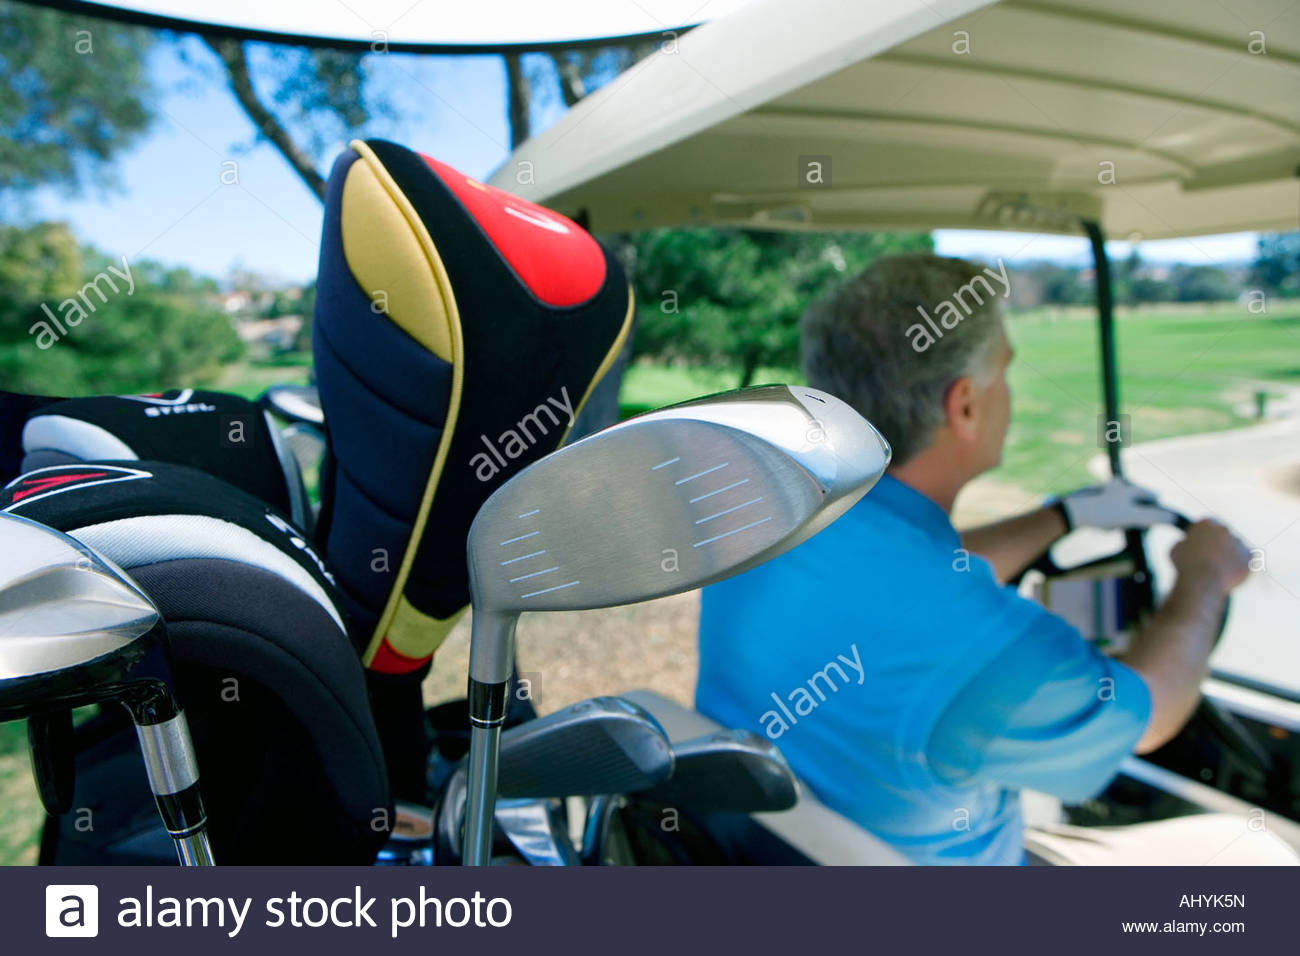 Mature man driving golf buggy on golf course, focus on golf clubs and bag in foreground, side view - Stock Image